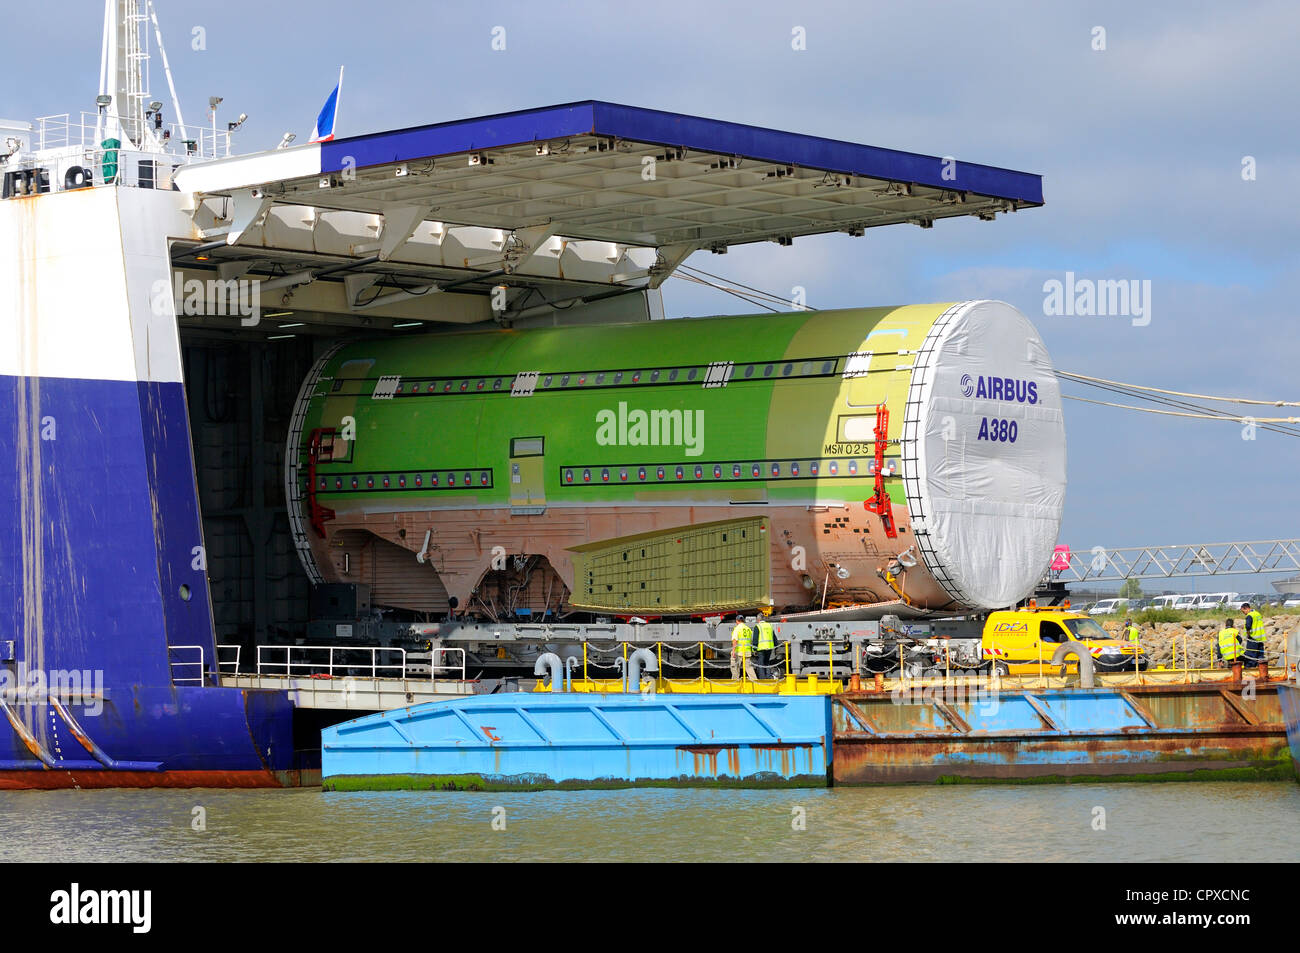 France loire atlantique nantes saint nazaire autonomous port roll on stock photo royalty free - Port autonome de nantes saint nazaire ...